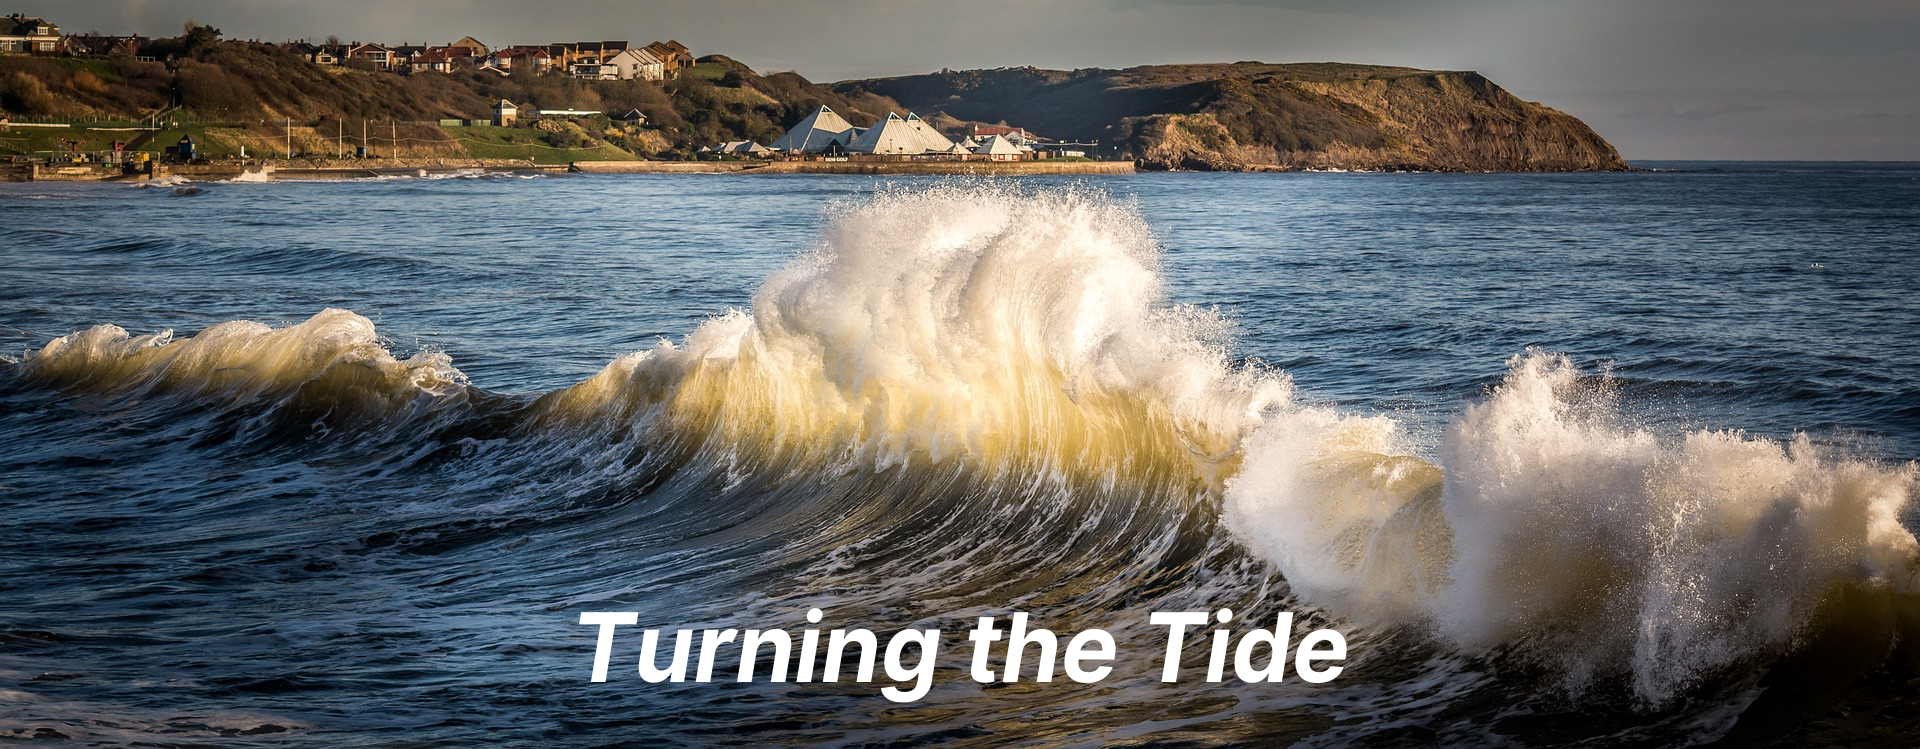 Turning the Tide 1